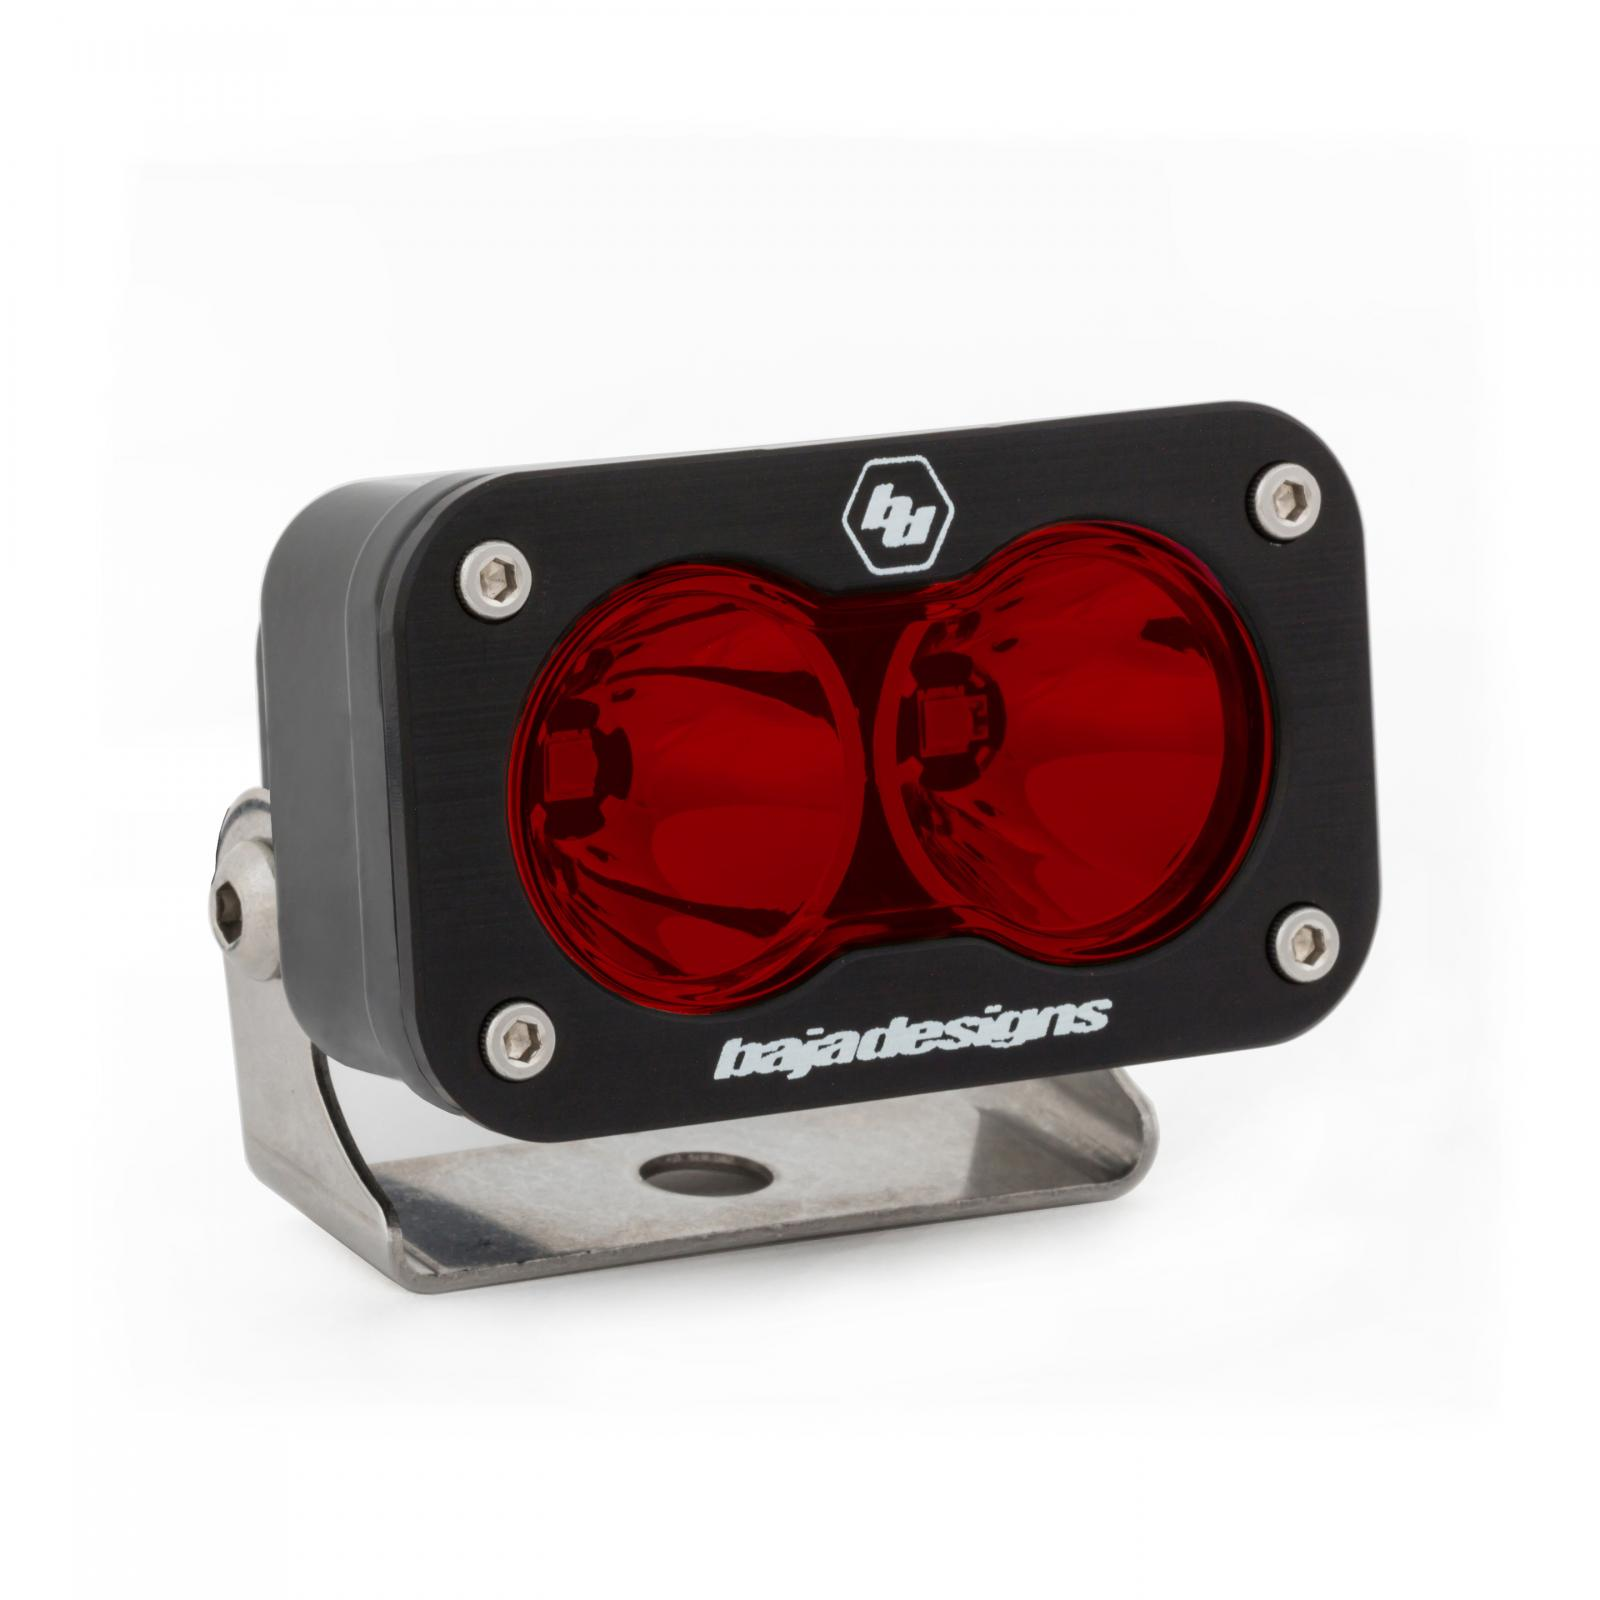 LED Work Light Red Lens Spot Pattern S2 Sport Baja Designs